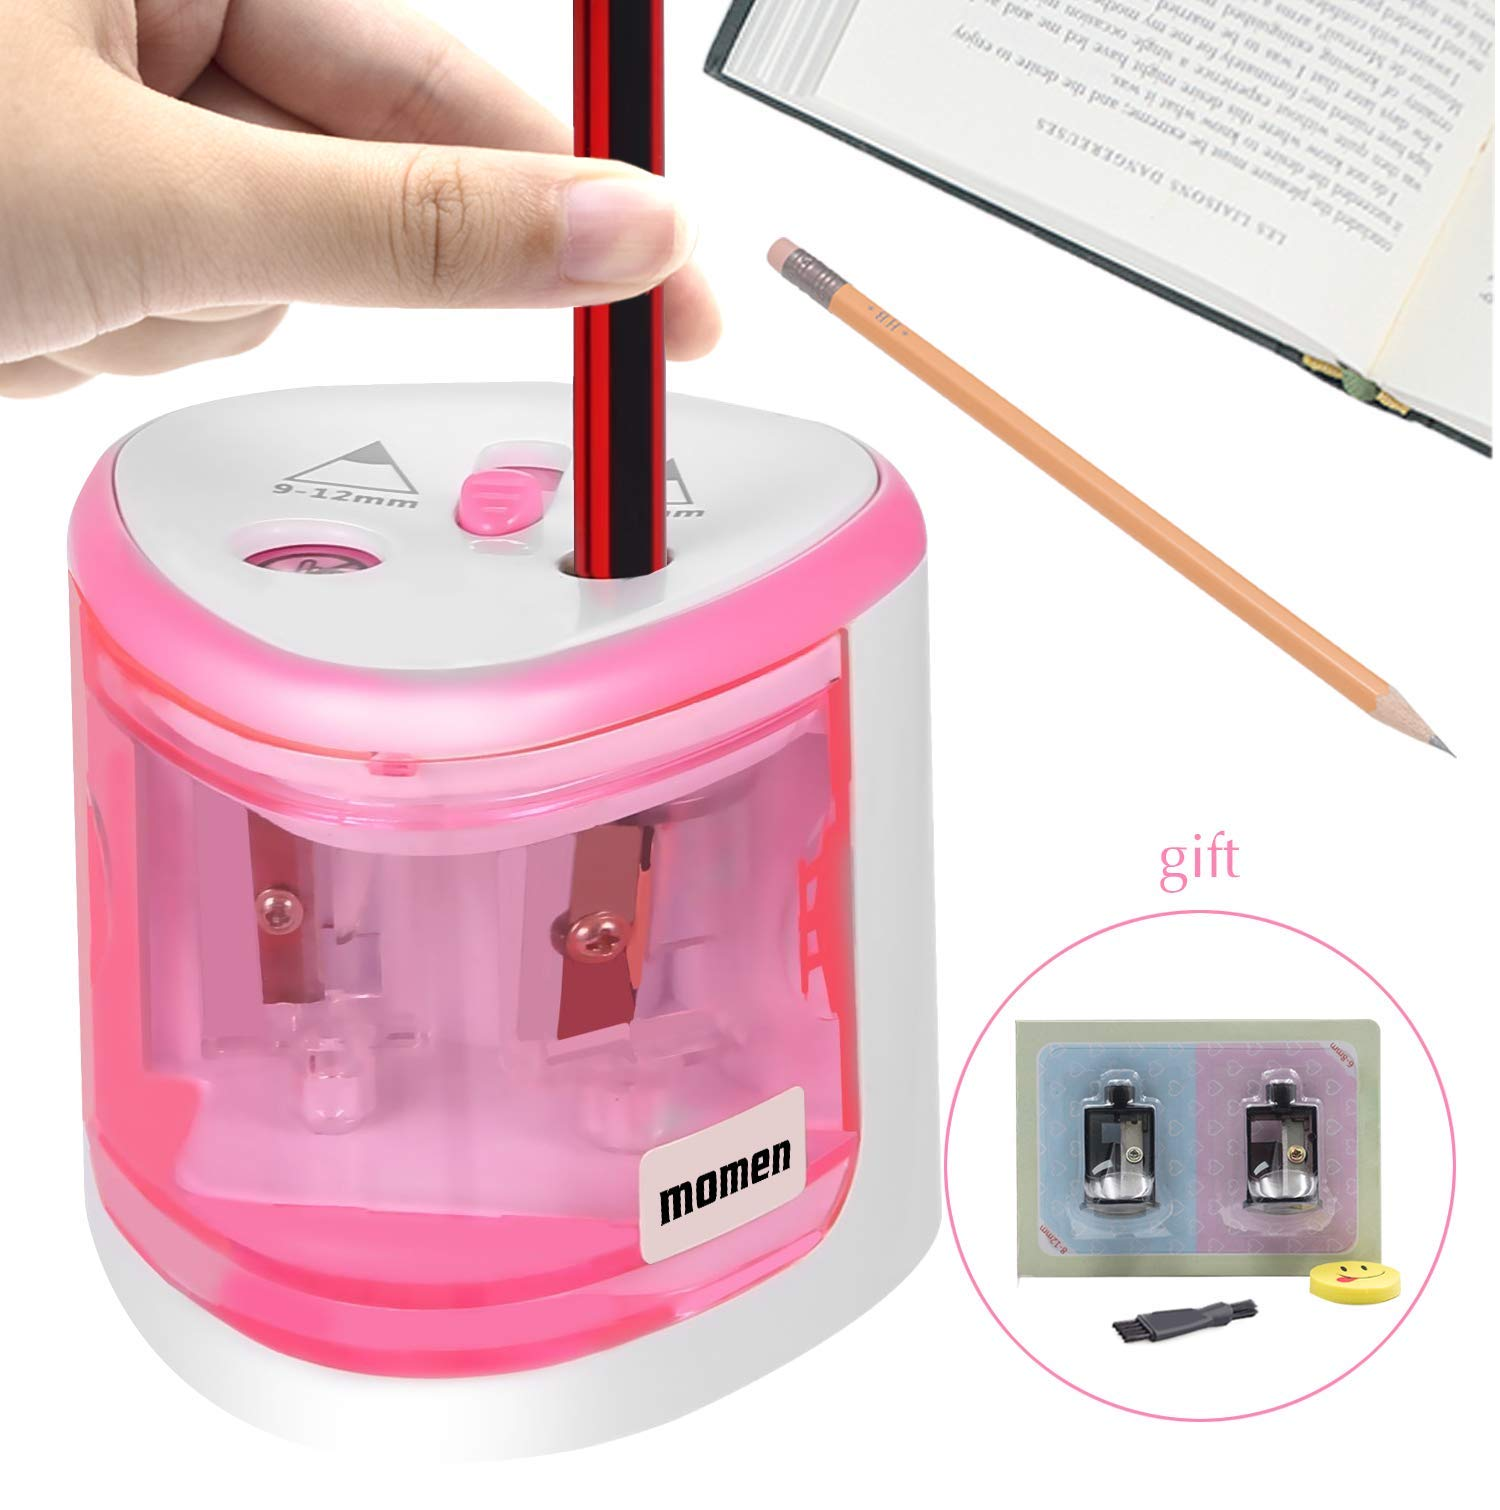 Electric Pencil Sharpener, momen Portable Automatic Colored Pencil Sharpener Heavy Duty for School Classroom Office Home Commercial-Pencil Sharpener Battery Operated for Kids, Teachers, Artists(Pink)